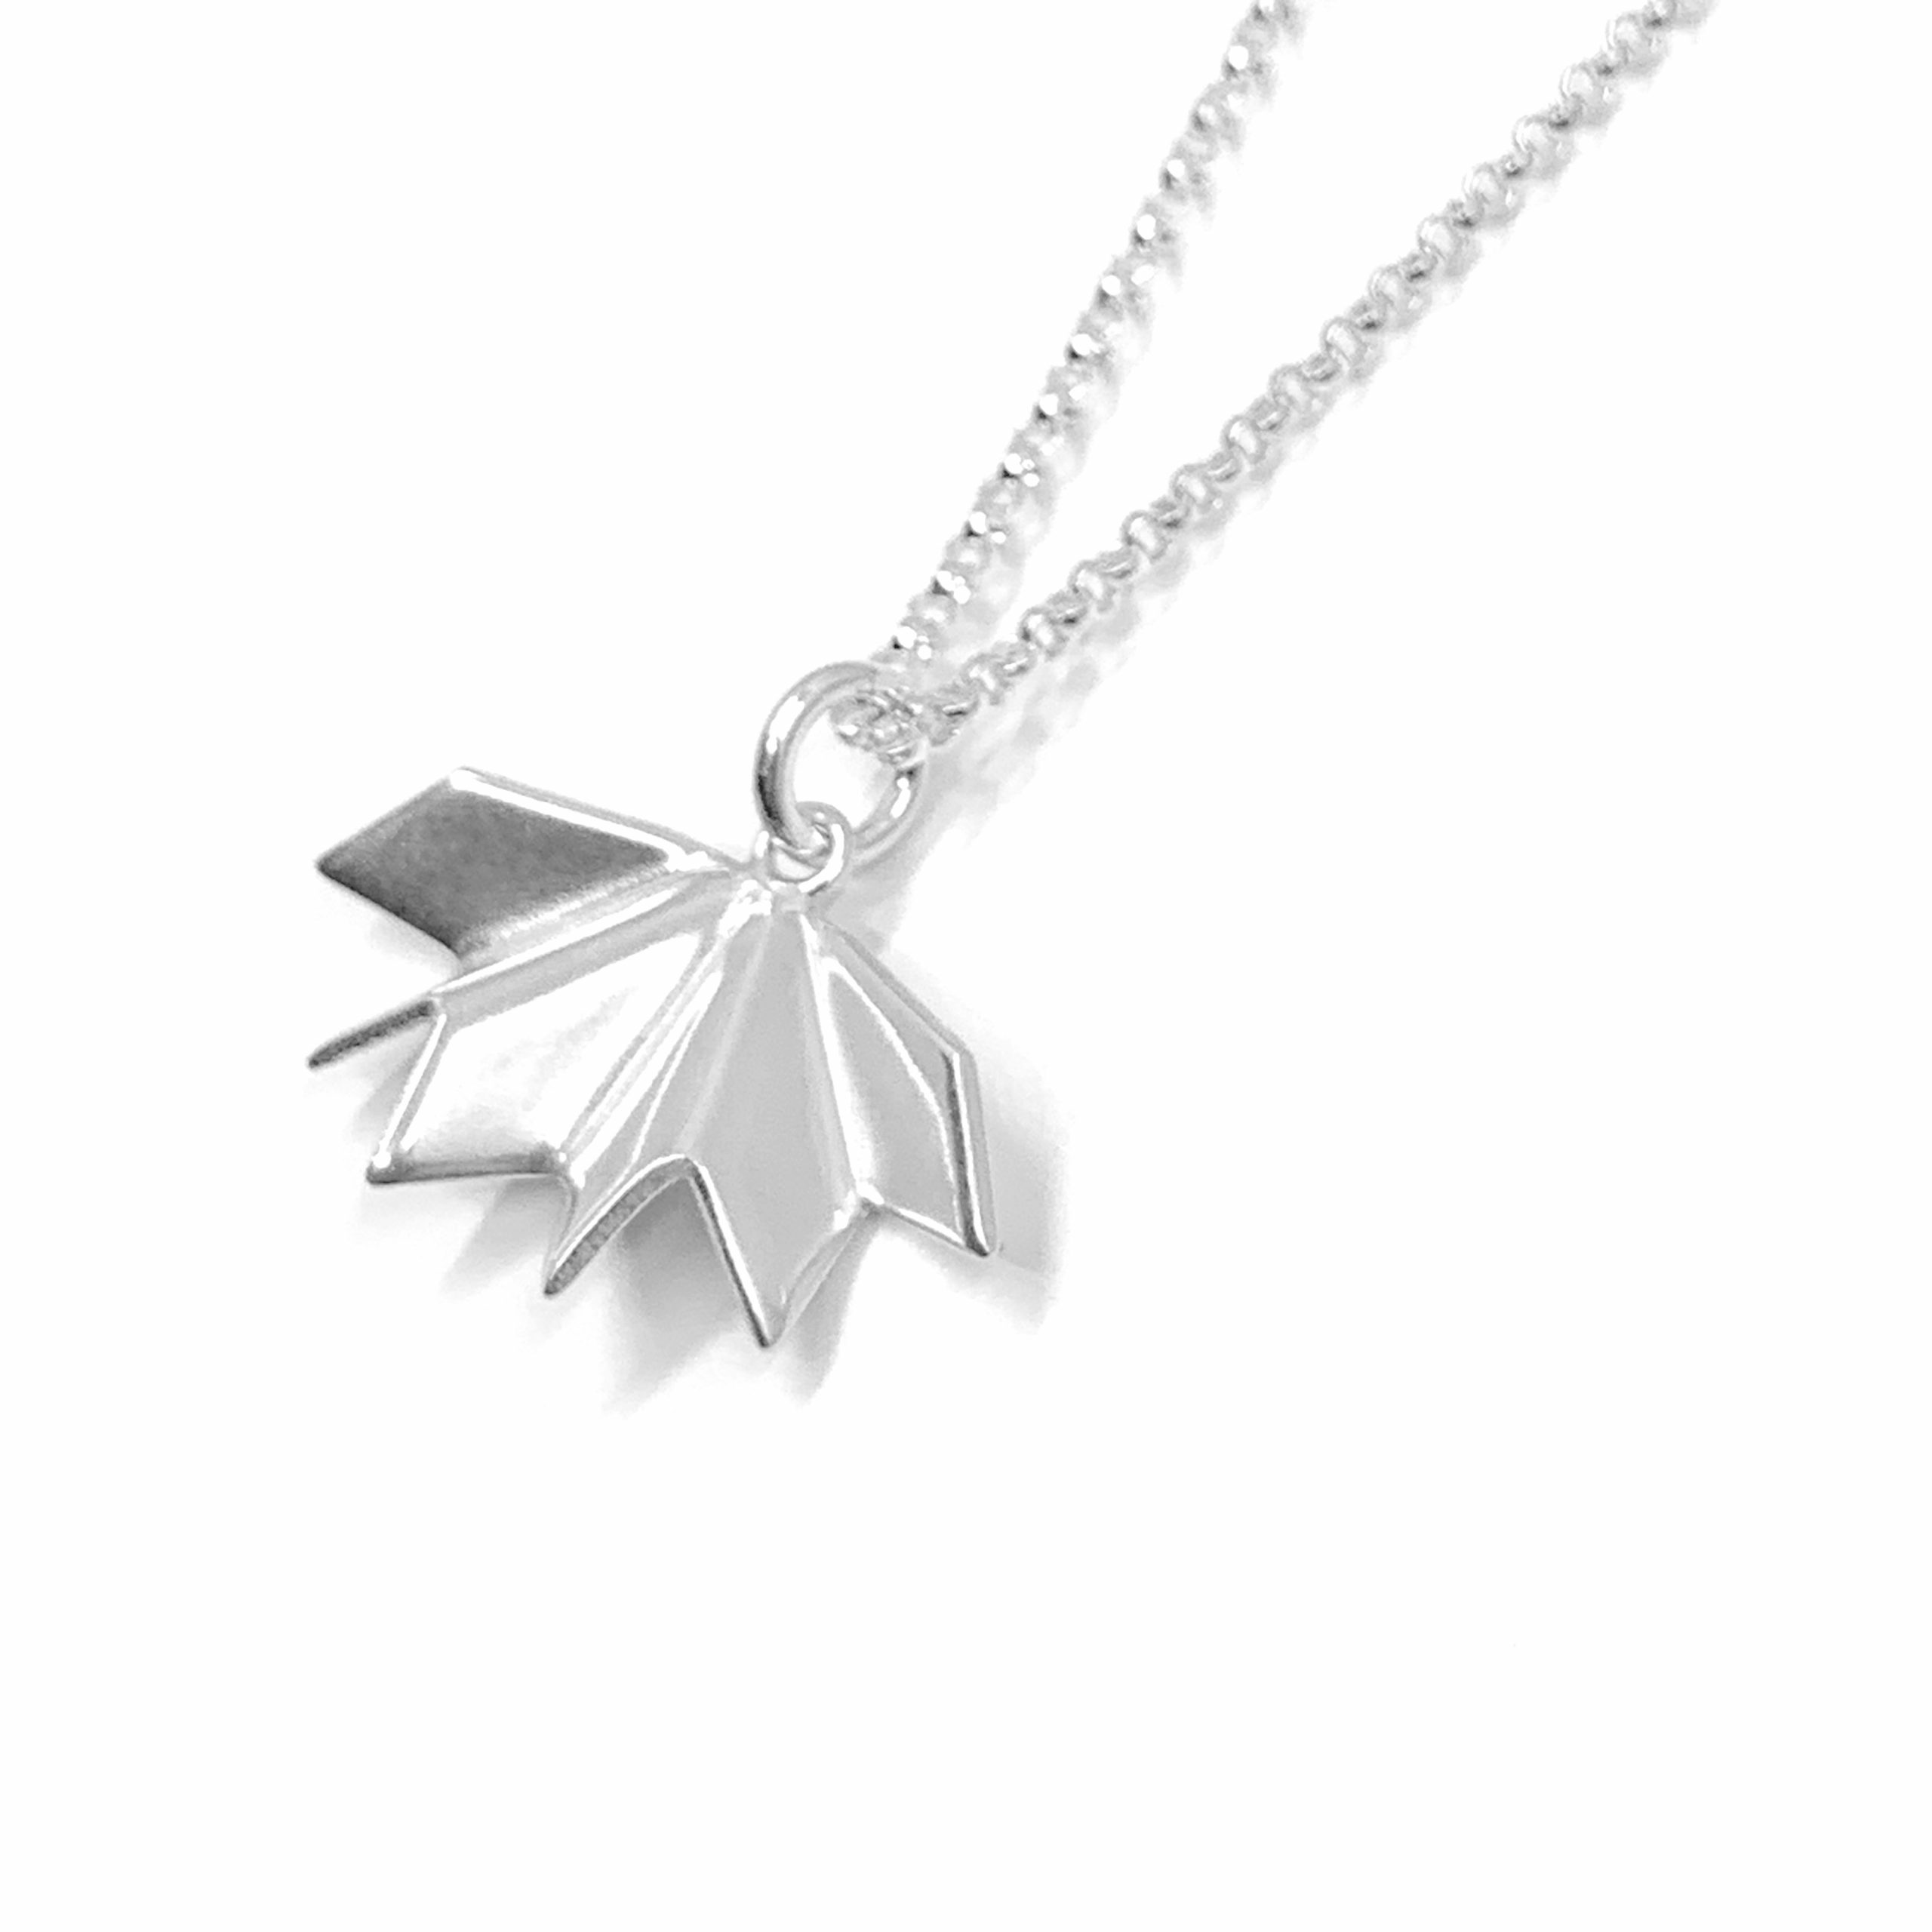 Unfolded silver necklace